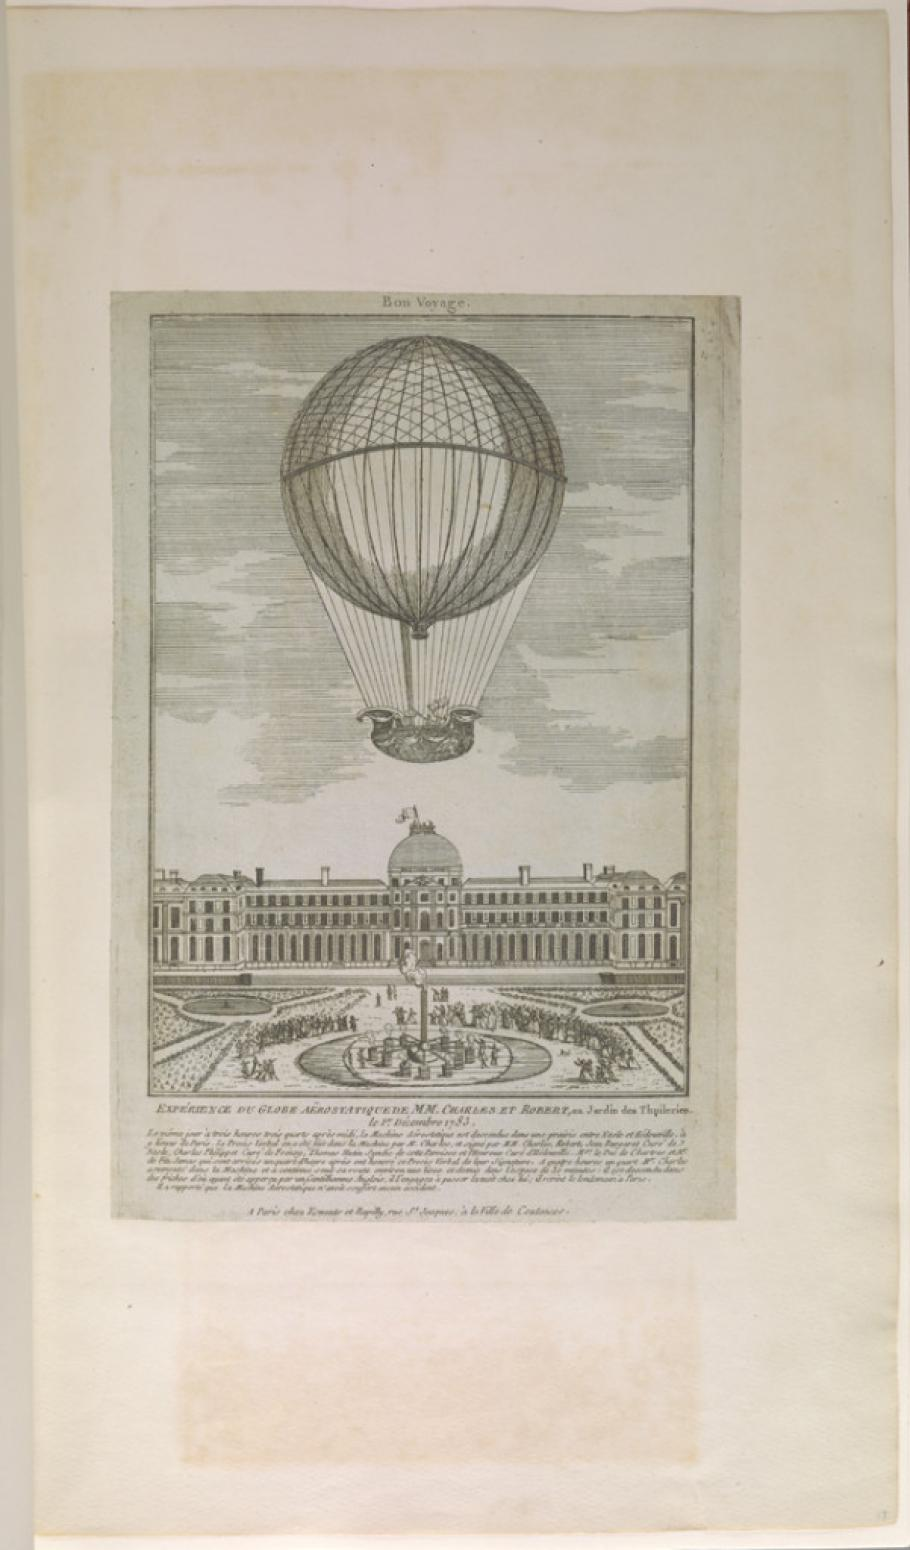 Illustration from William Upcott's Scrapbook of Early Aeronautica